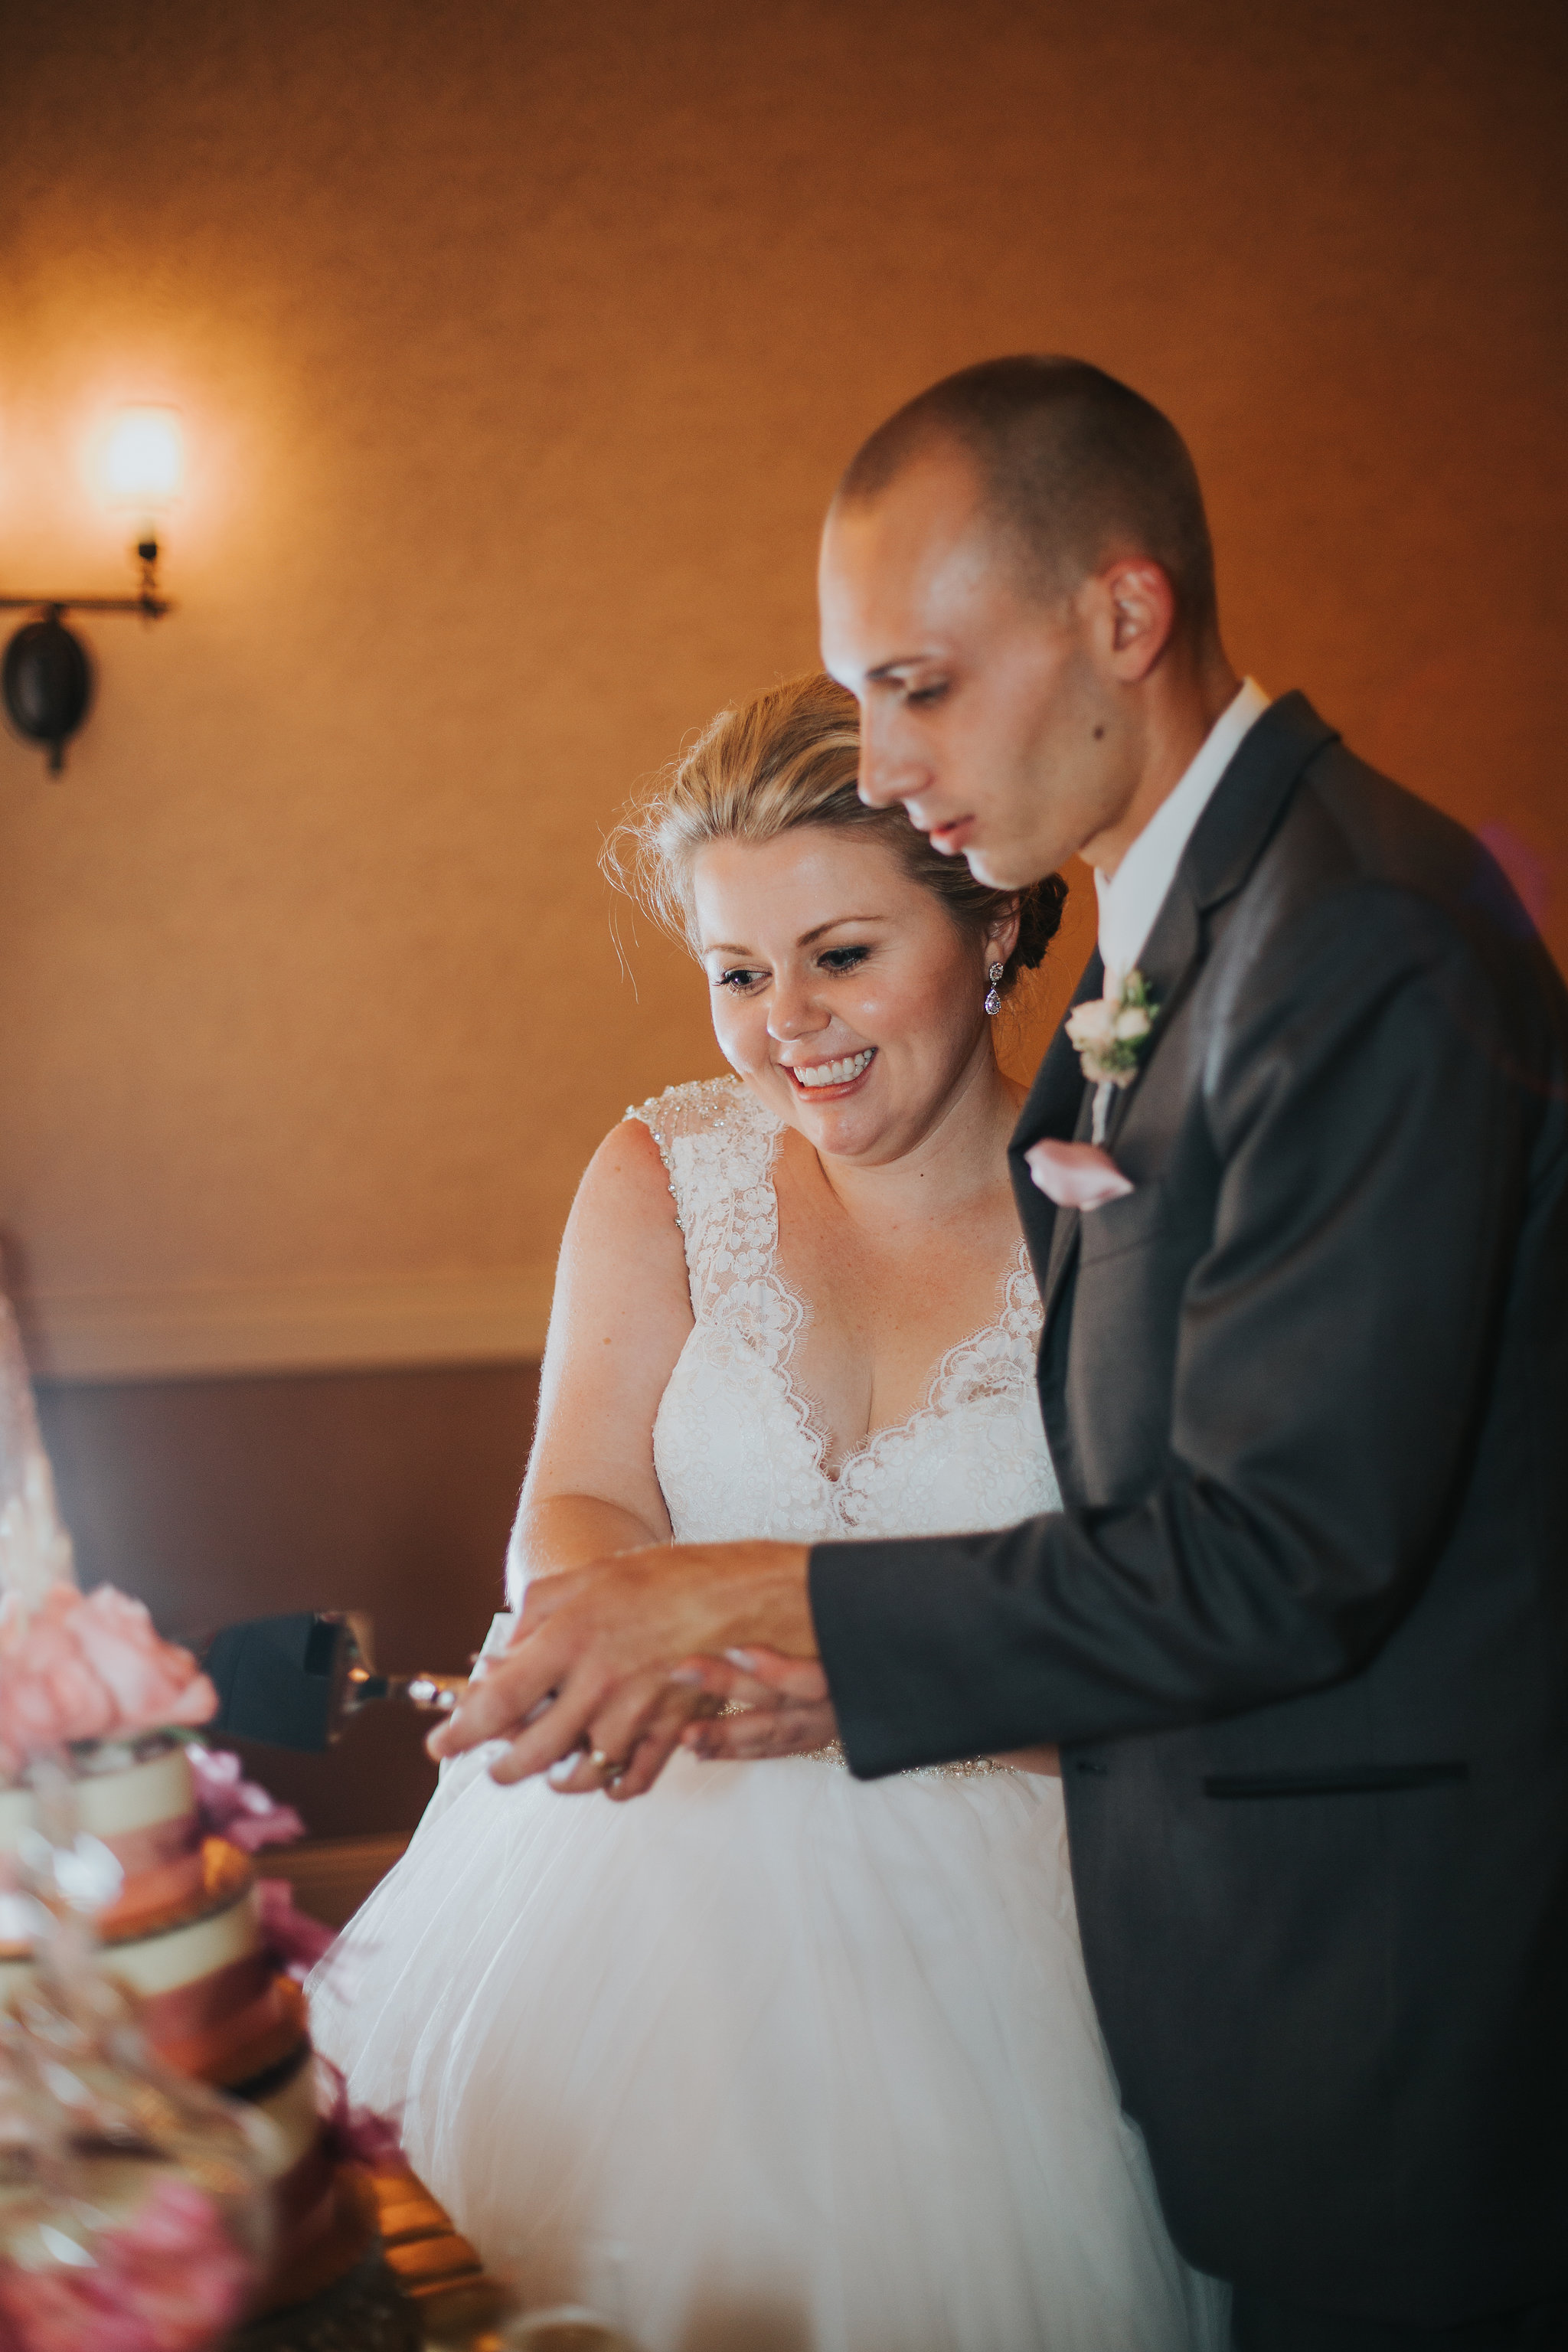 Vinters-Inn-Wedding-Reception-Cake-Cutting.jpg